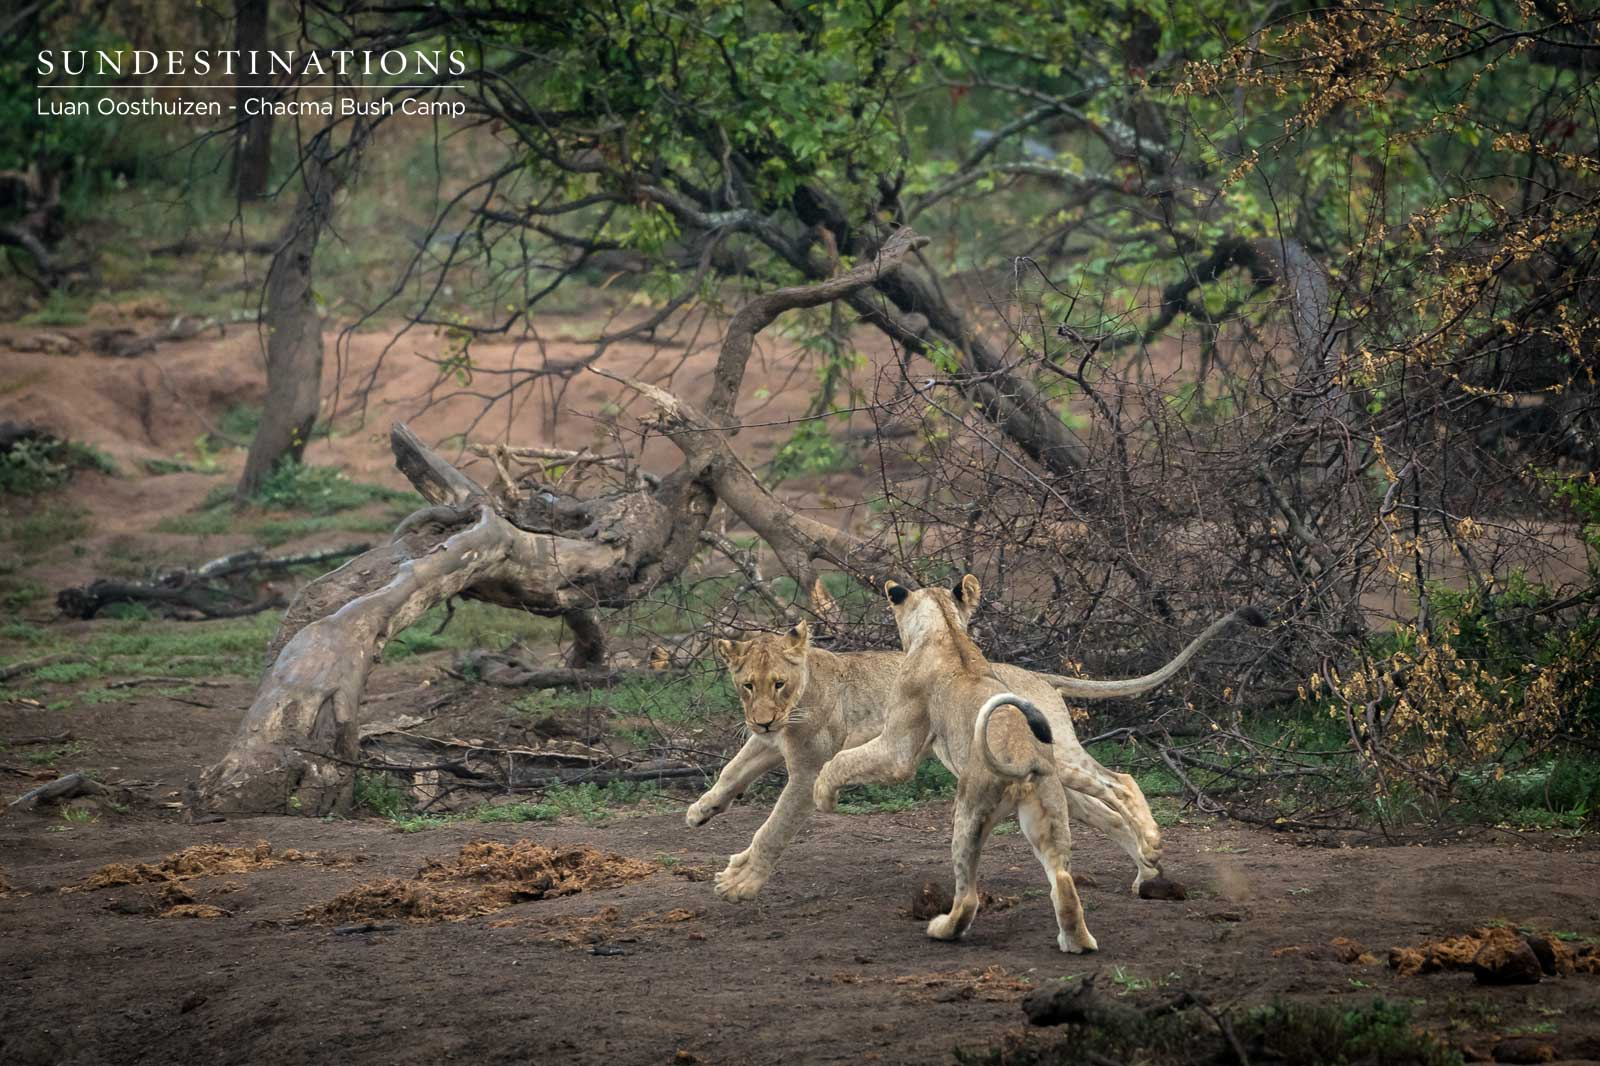 Lions at Chacma Play